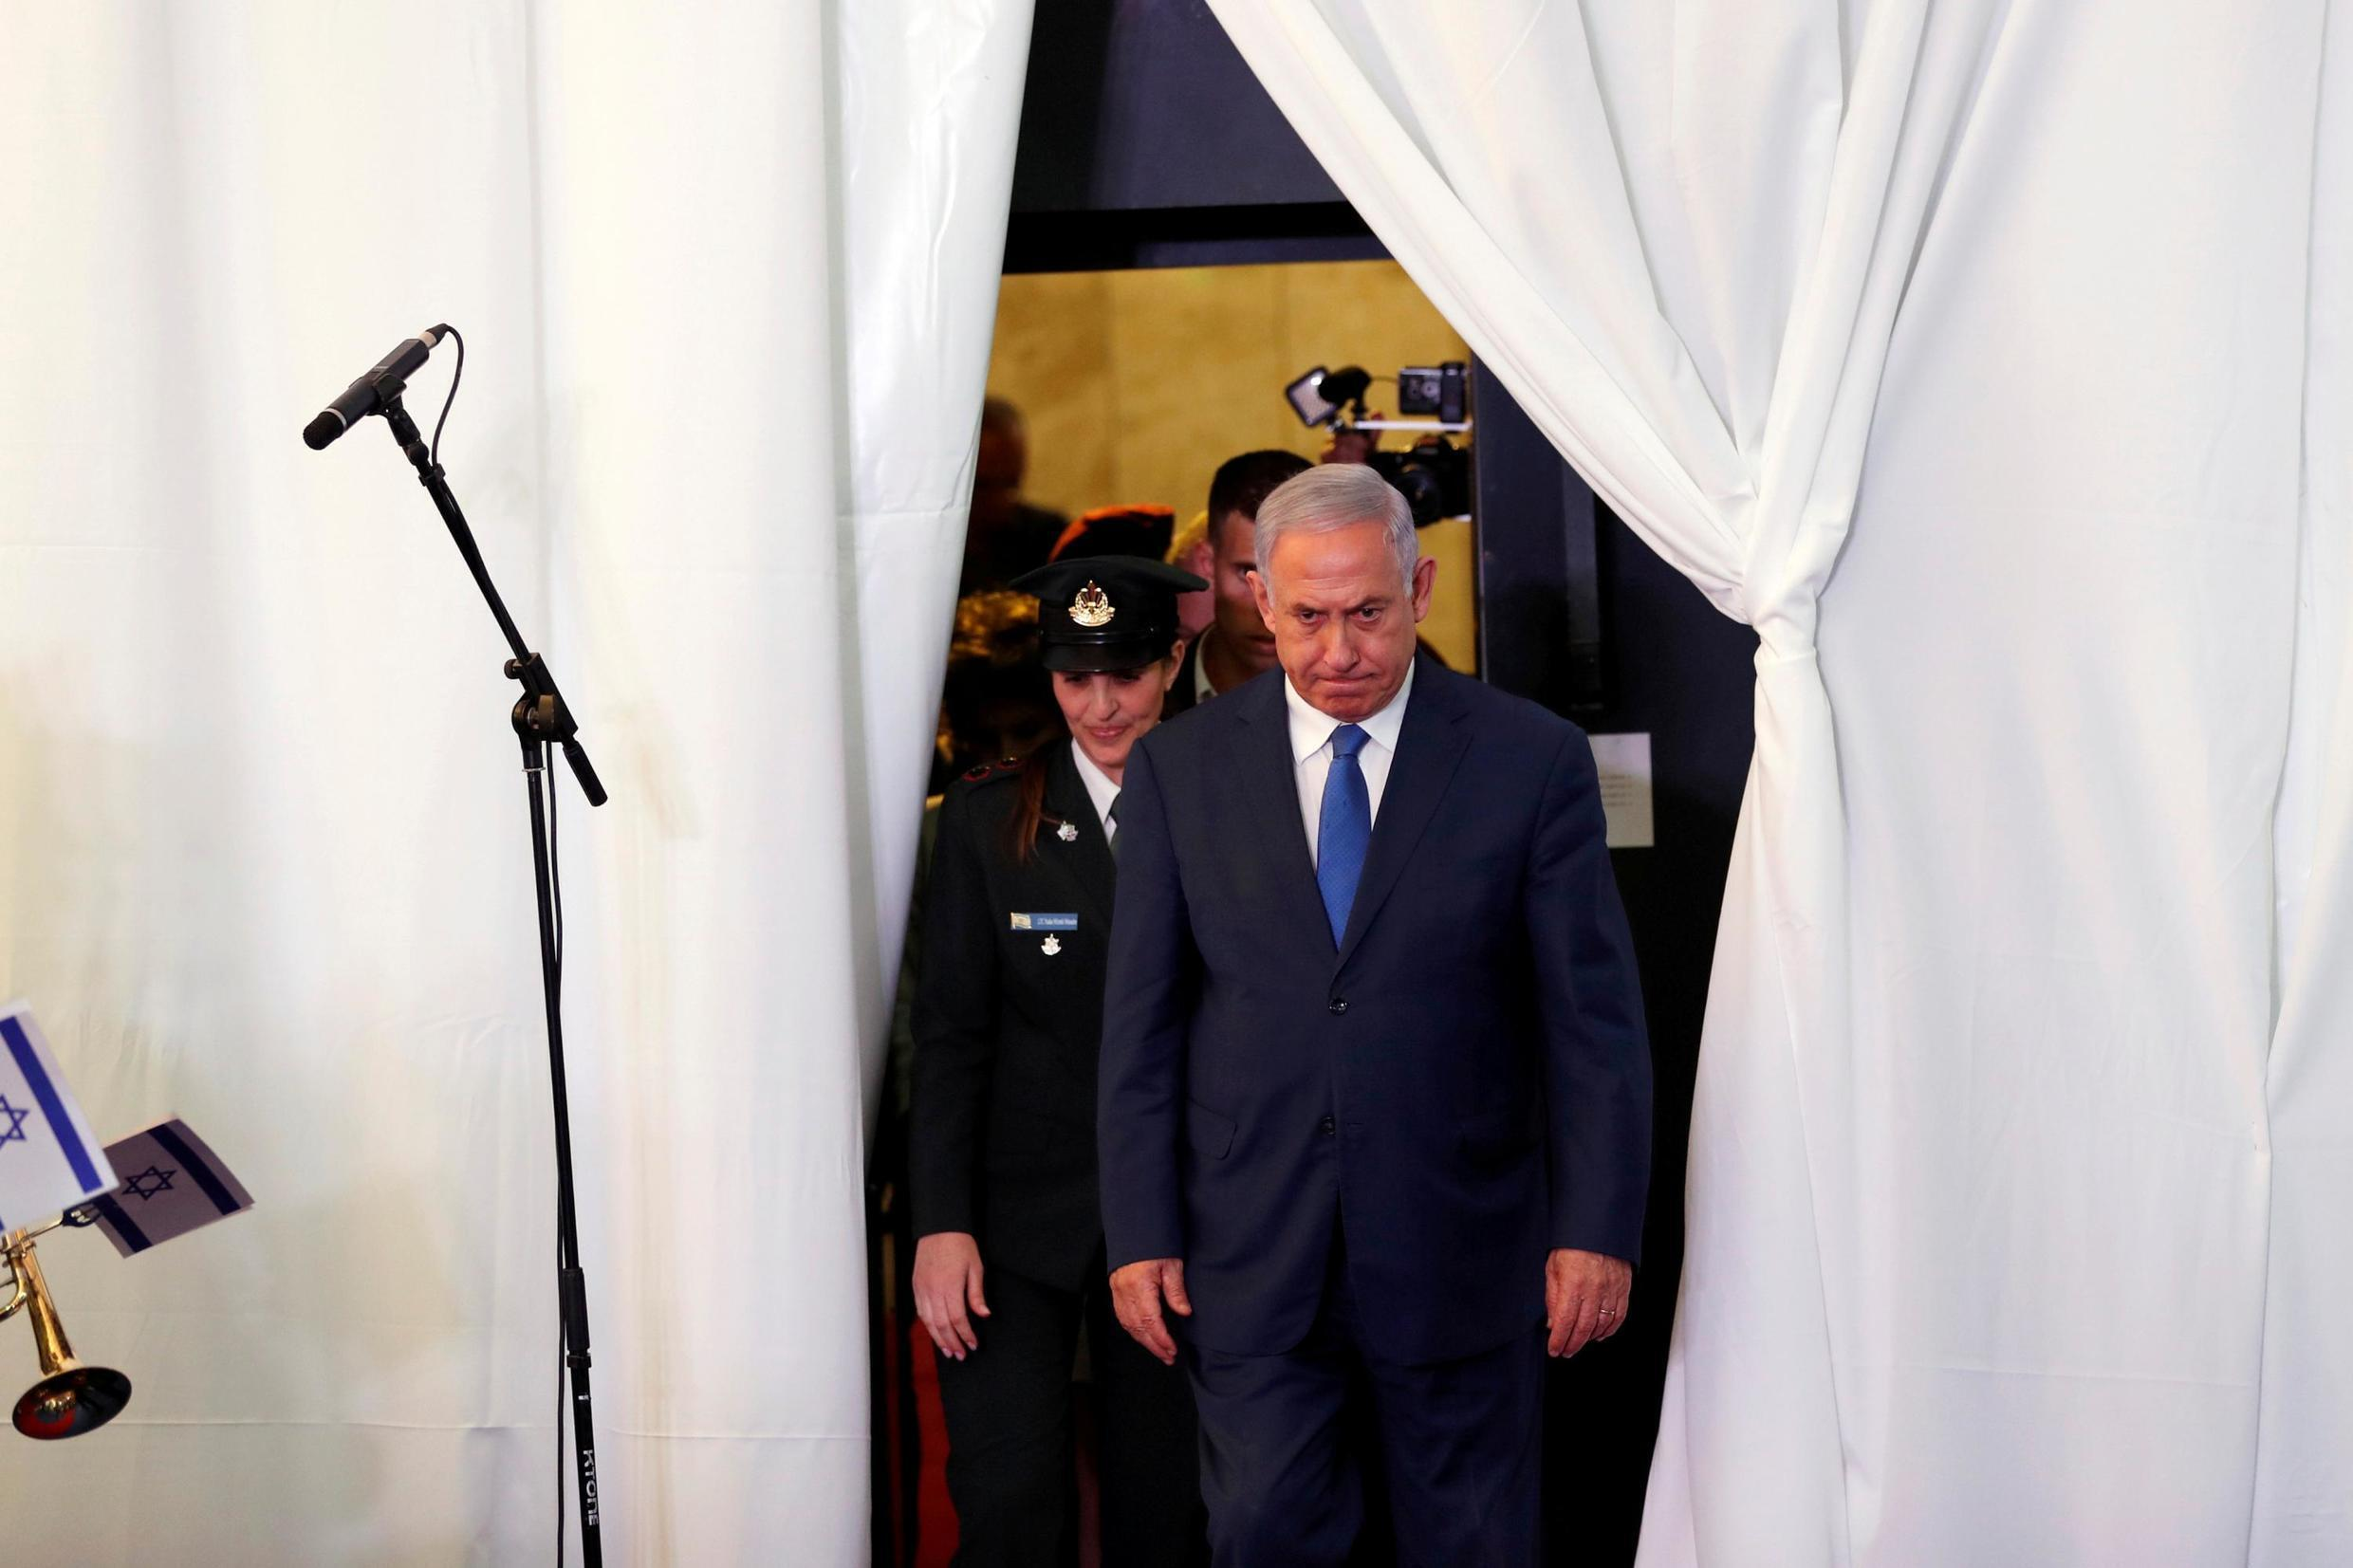 FILE PHOTO: Israeli Prime Minister Benjamin Netanyahu looks on as he arrives to review an honor guard with his Ethiopian counterpart Abiy Ahmed during their meeting in Jerusalem September 1, 2019